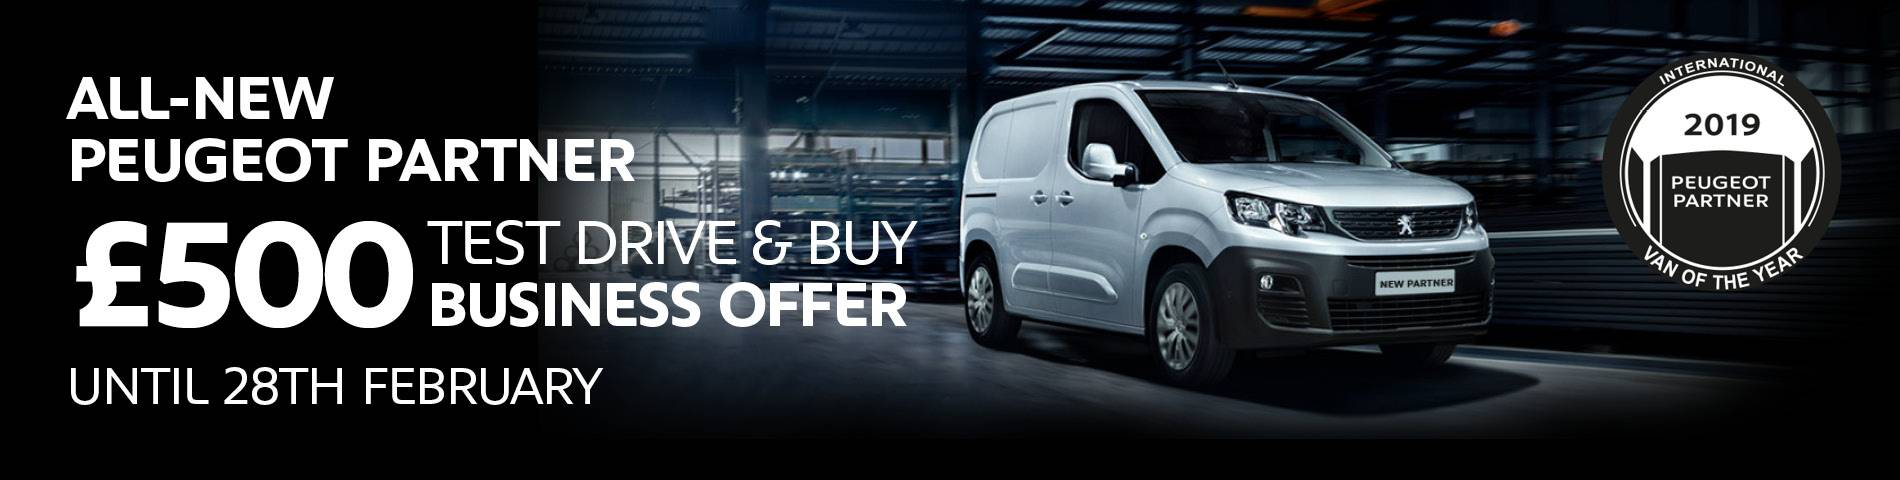 Peugeot Partner Test Drive & Buy